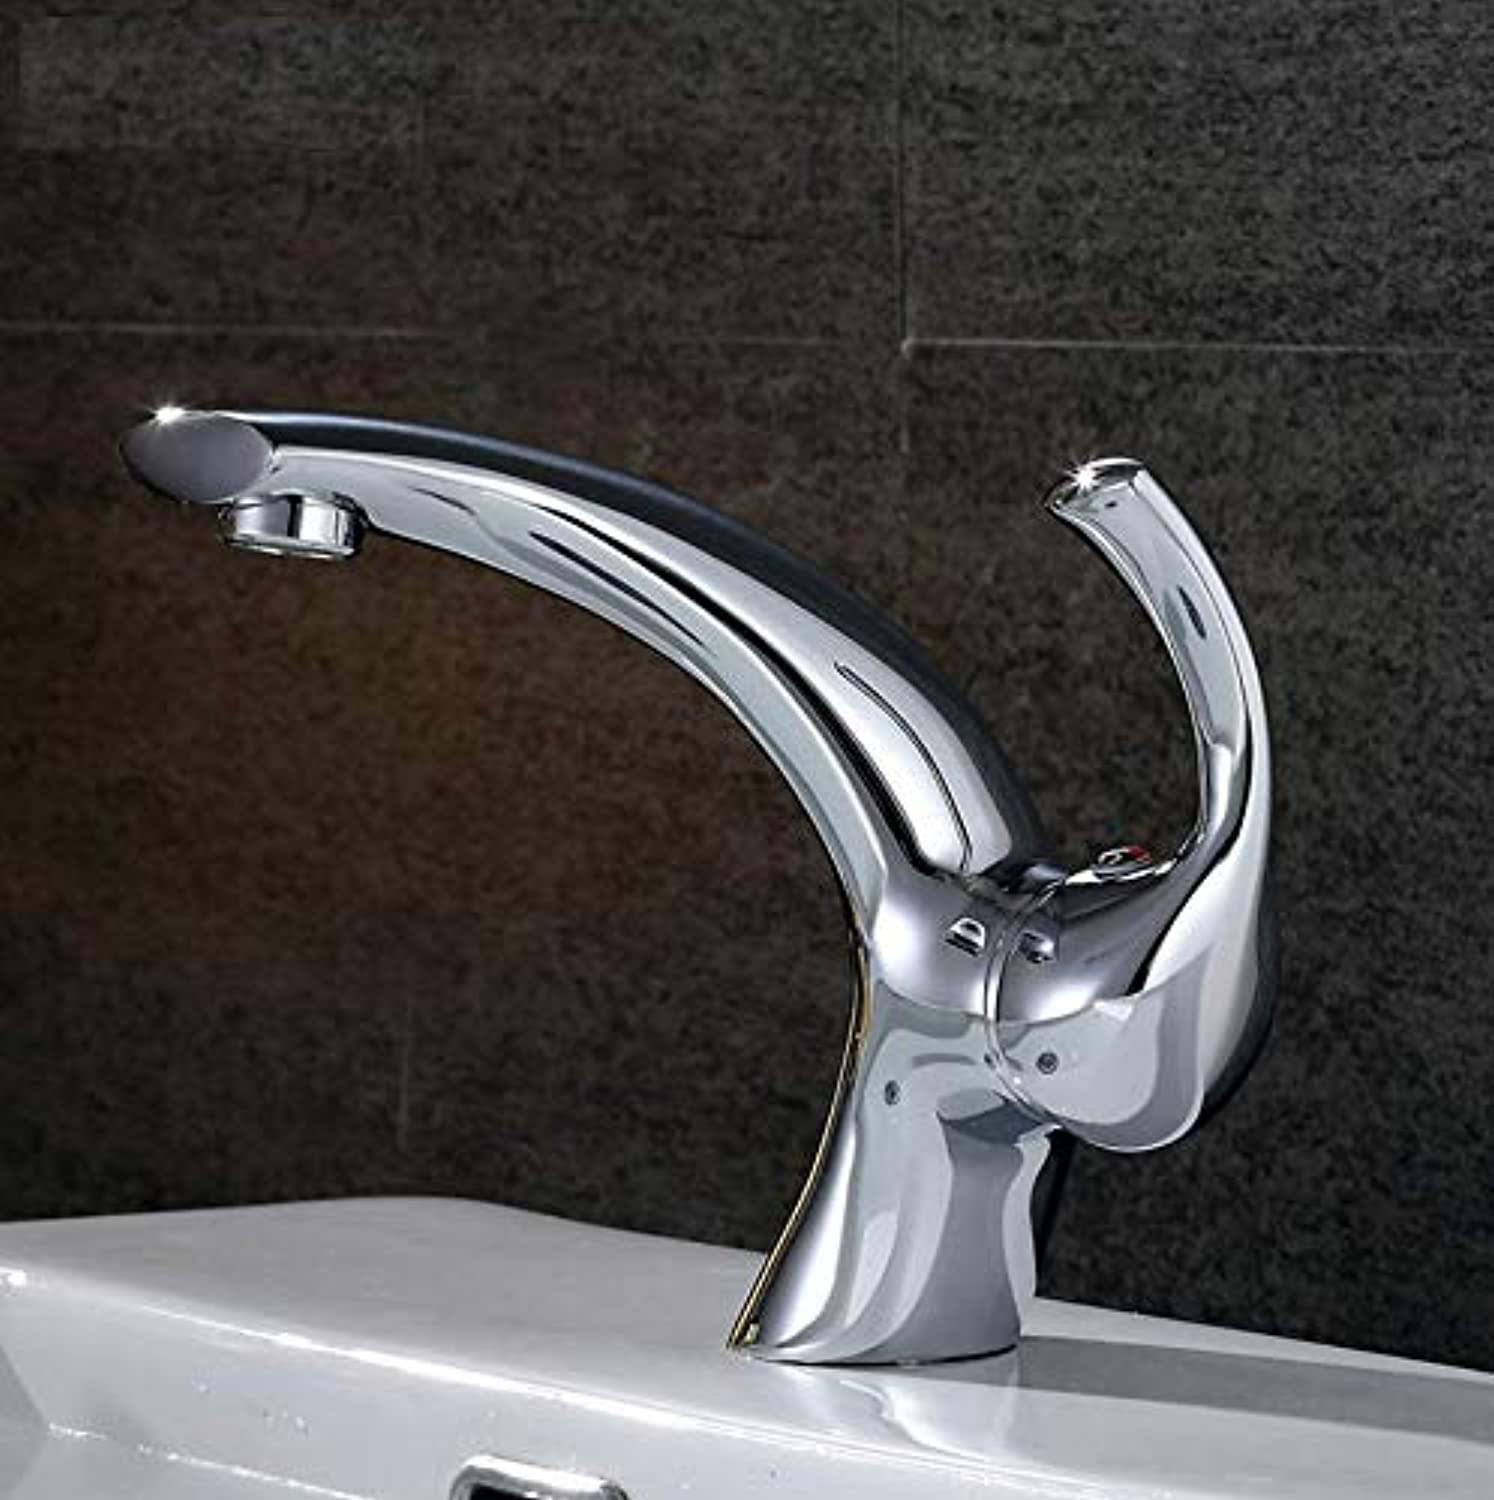 Dwthh Newly Brushed Nickel Basin Faucet, Hot&Cold Mixer Bathroom Basin Tap Brass